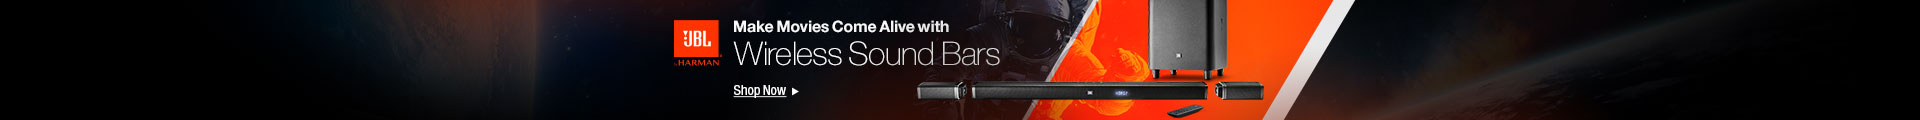 JBL Wireless Sound Bars